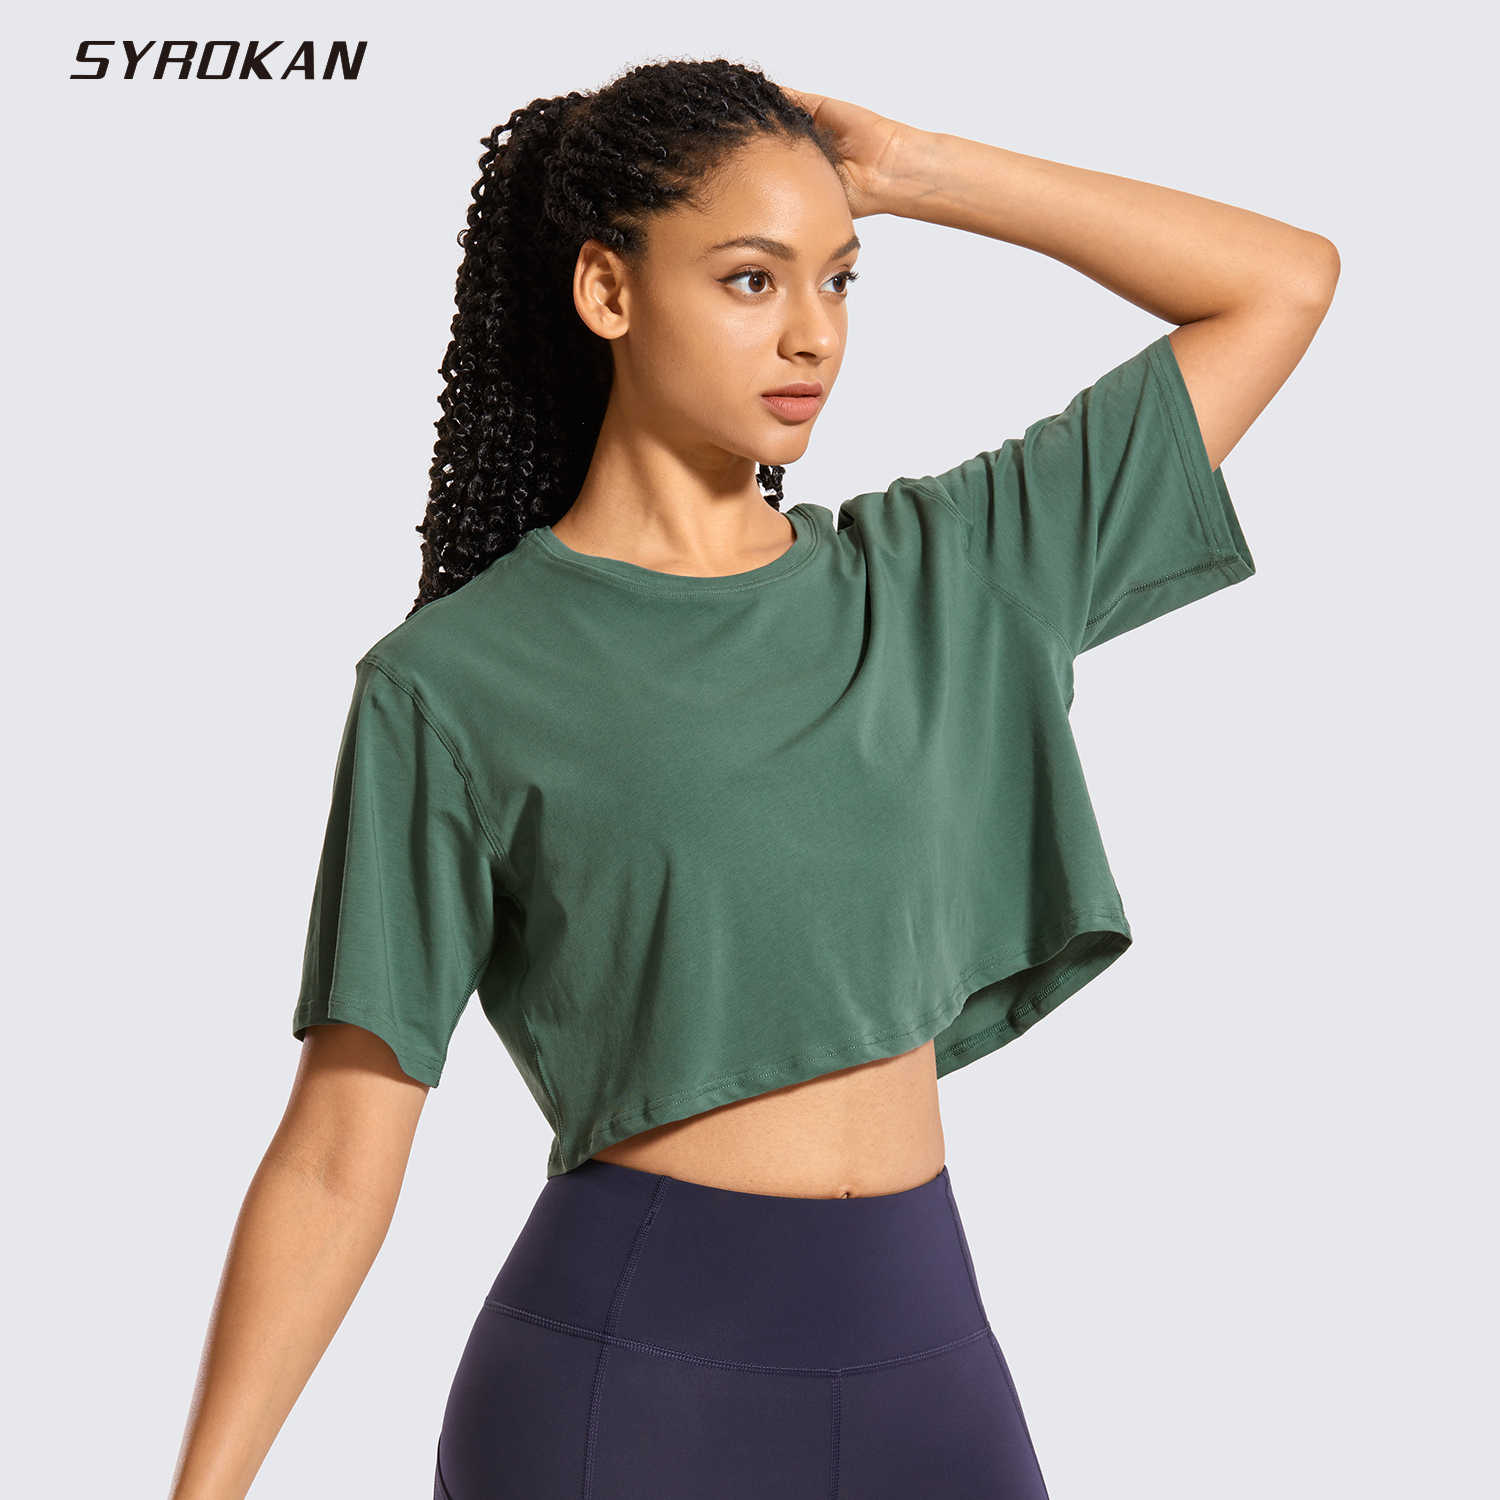 Syrokan Vrouwen Pima Katoen Workout Crop Tops Korte Mouw Running T-shirts Casual Athletic Tees